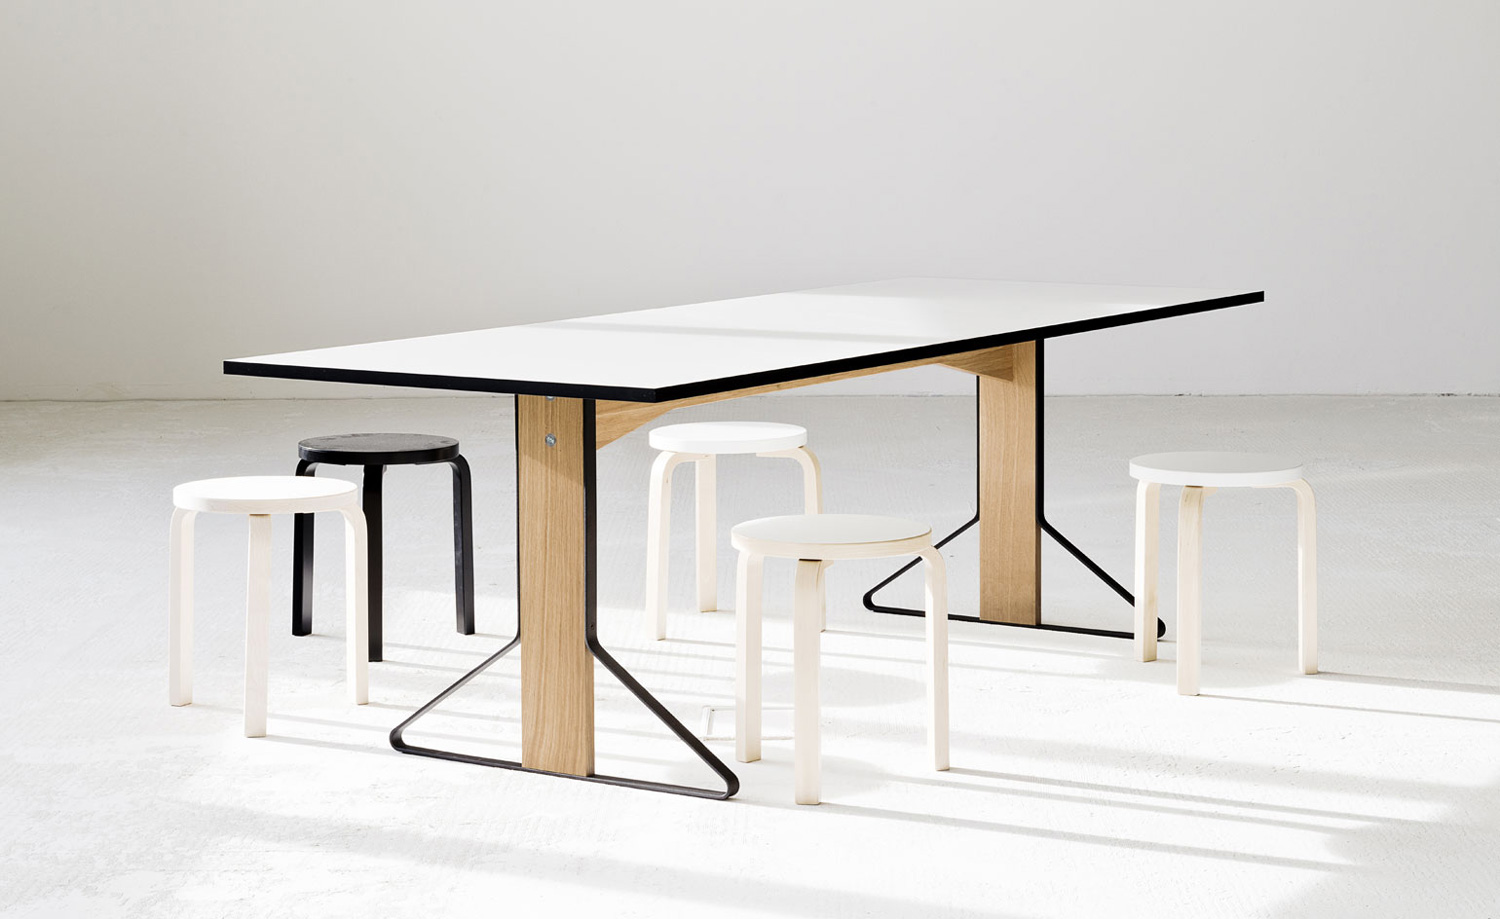 Kaari Collection by Ronan & Erwan Bouroullec for Artek at Stockholm Design Week 2015 | Yellowtrace